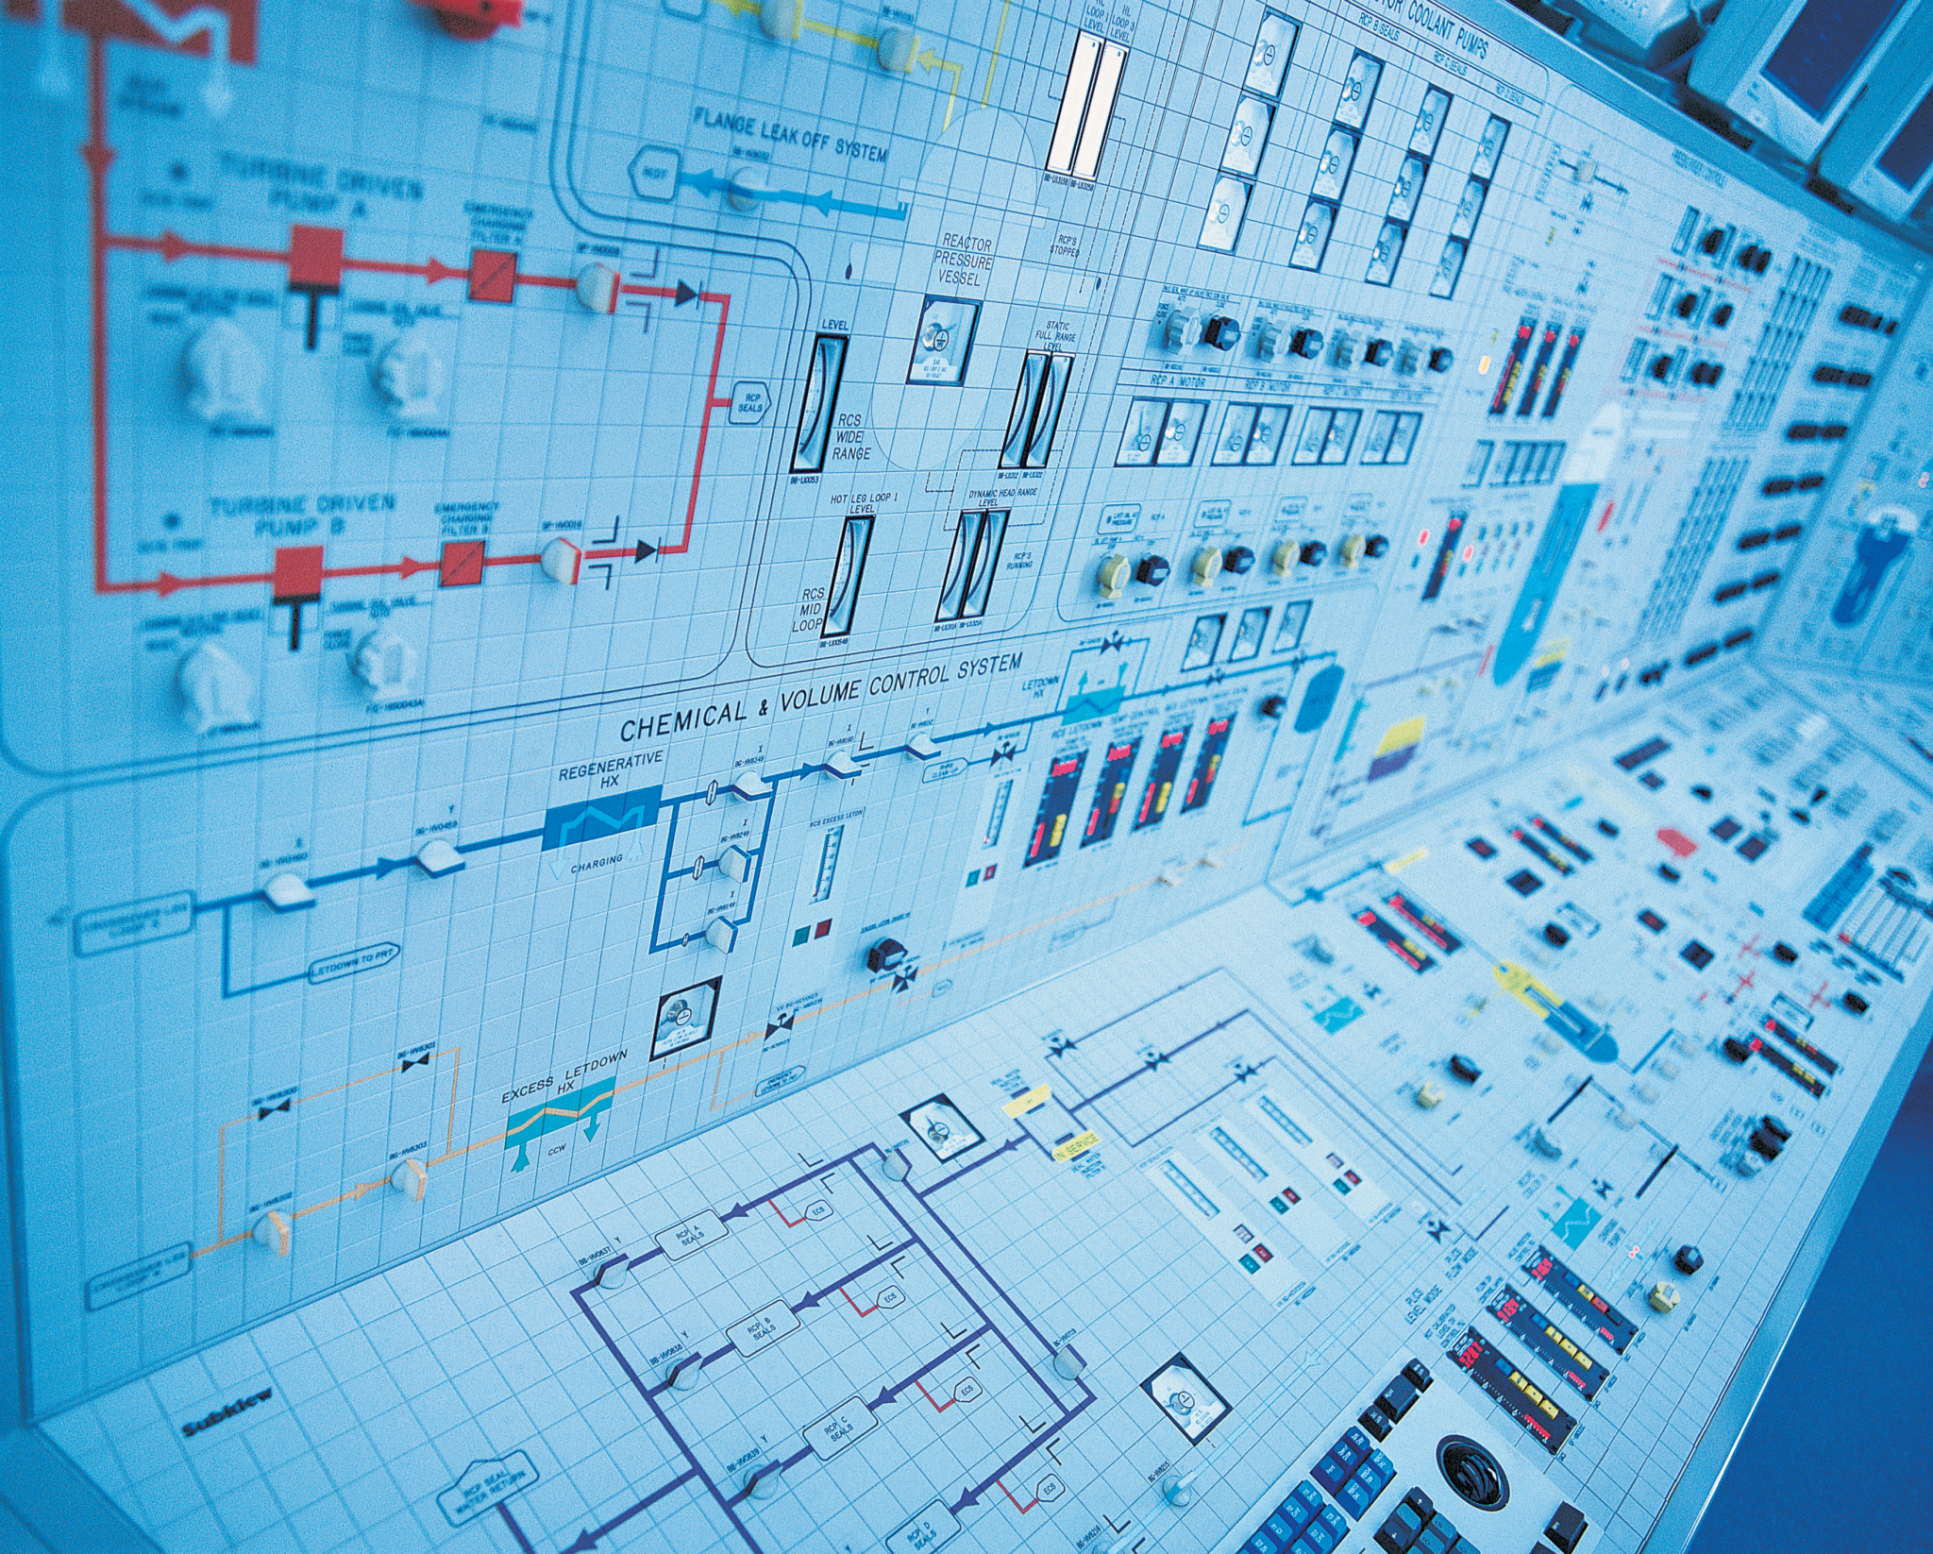 Controls on a SCADA Network in a Nuclear Power Plant